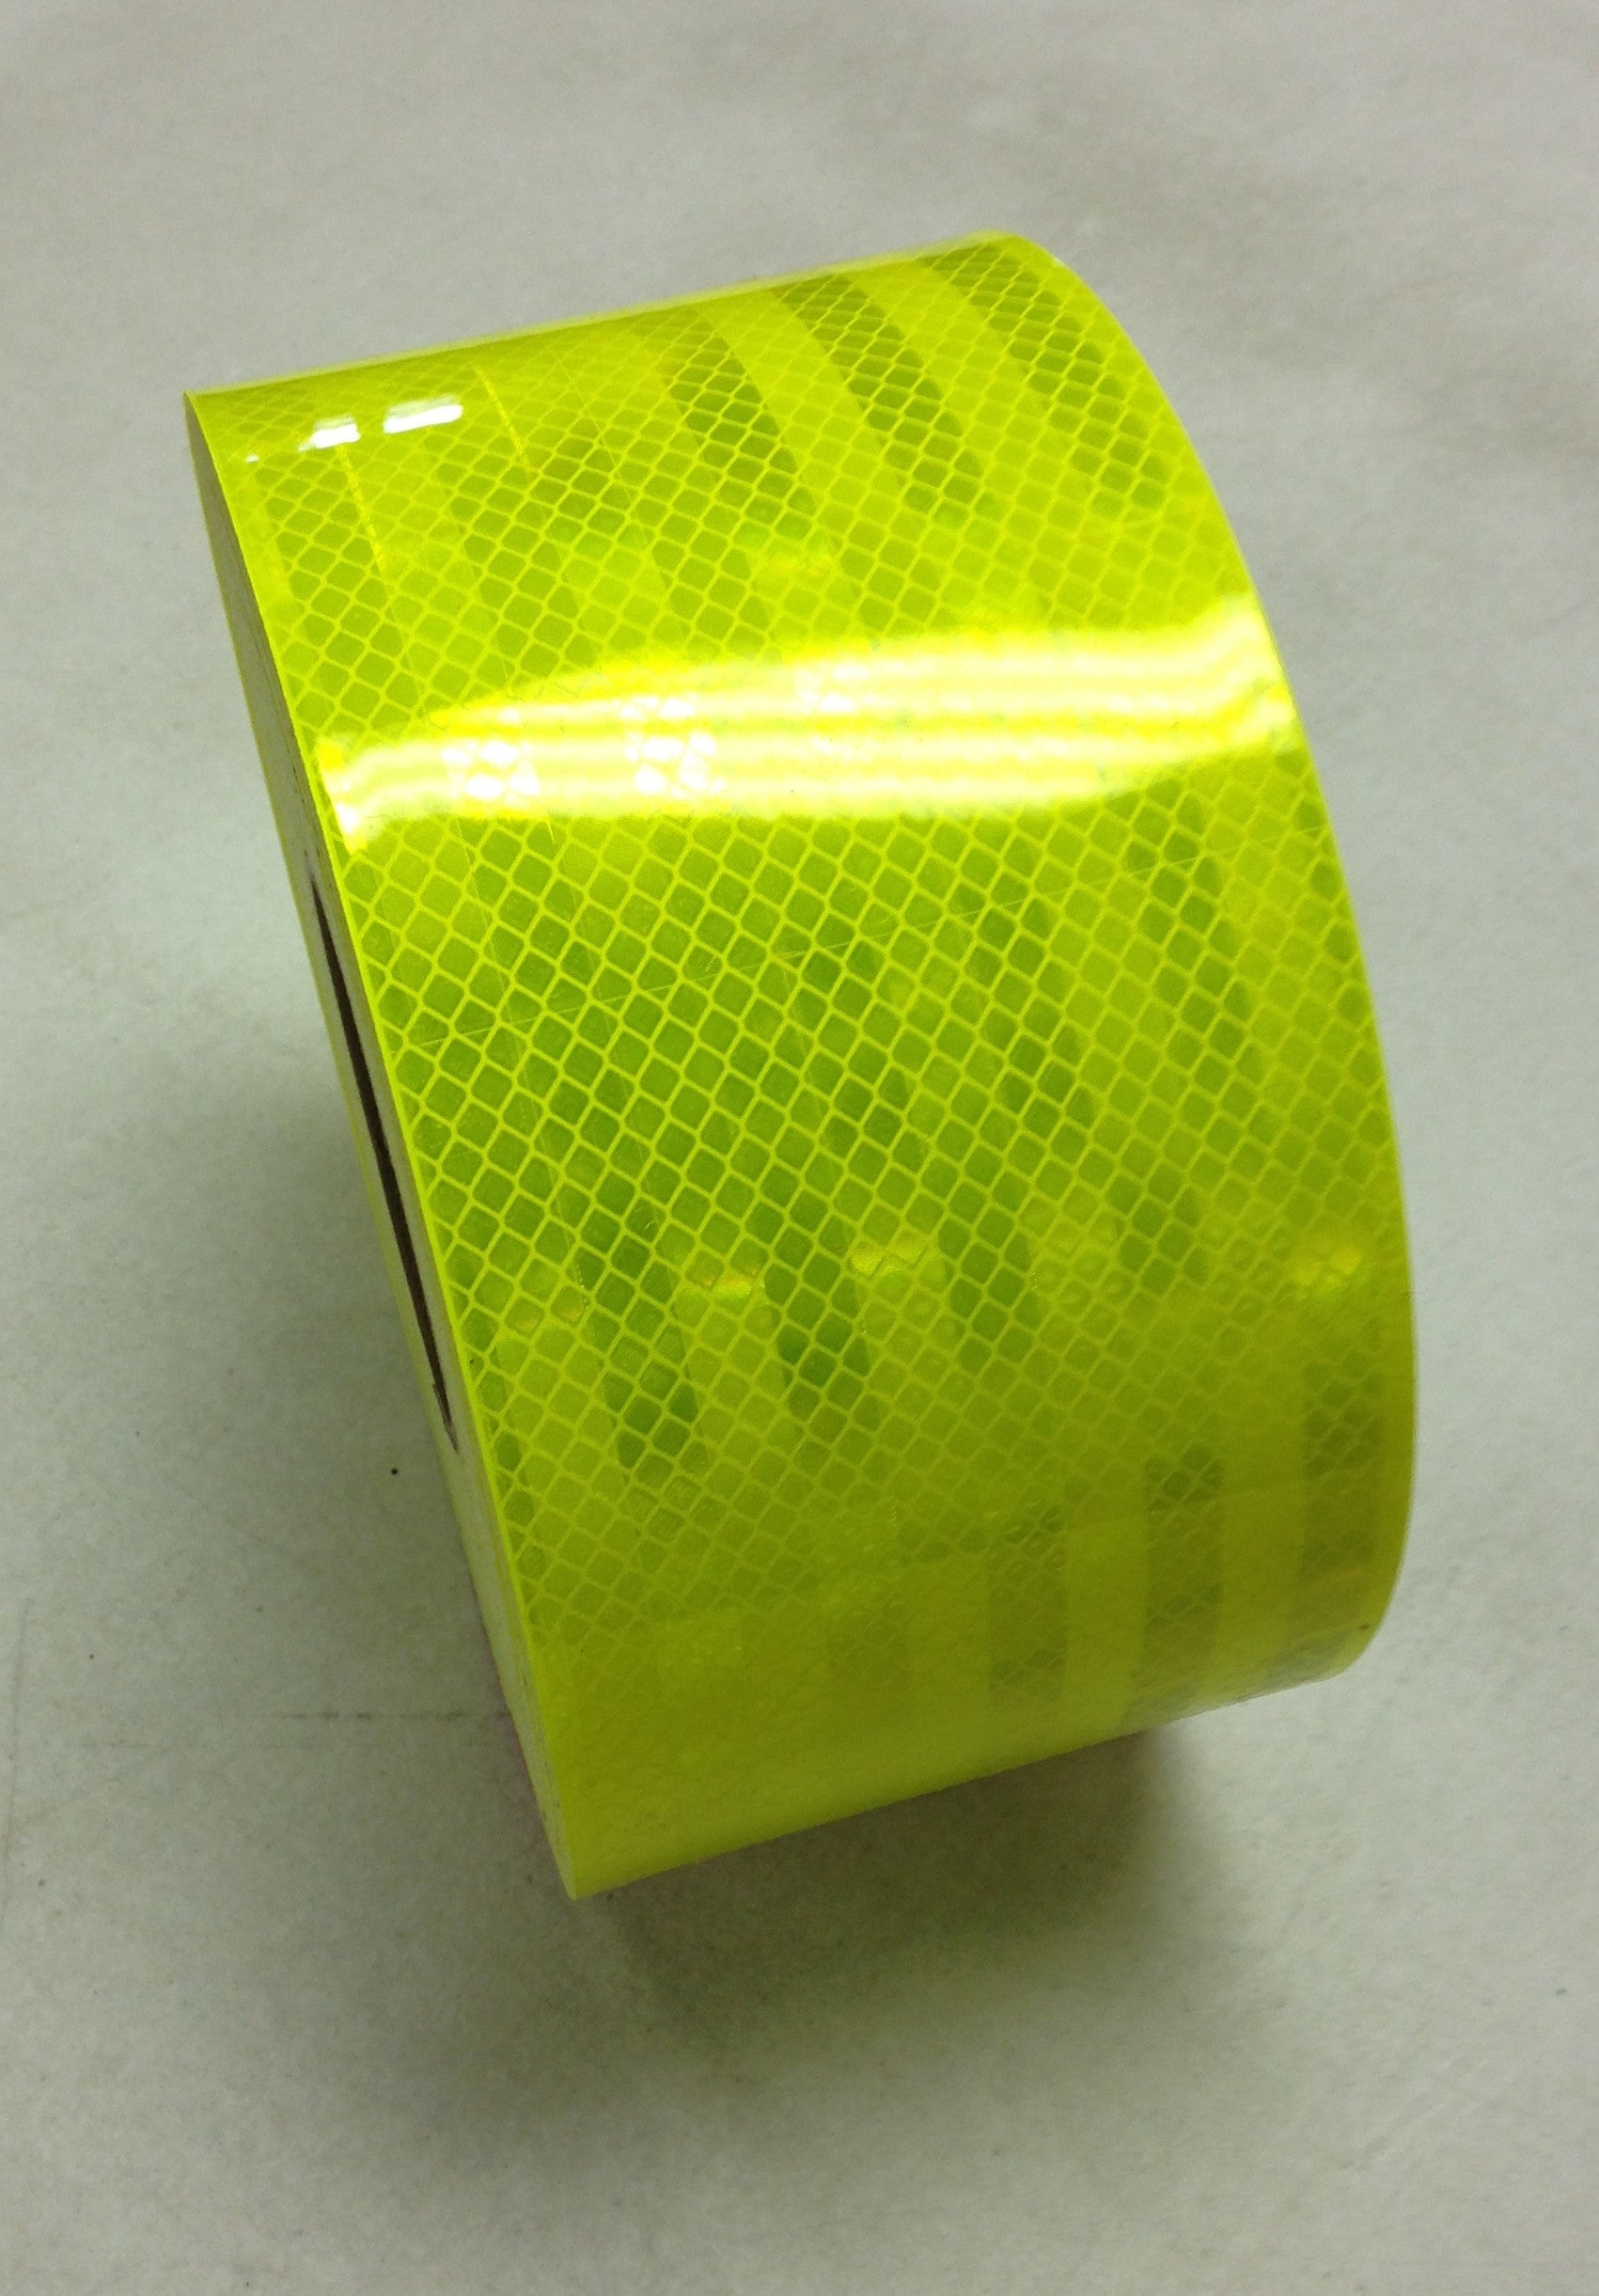 "6"" x 10 Foot Roll 3M 983-23 Series Reflective Conspicuity Tape Pressure Sensitive Adhesive 75-0301-6218-6"